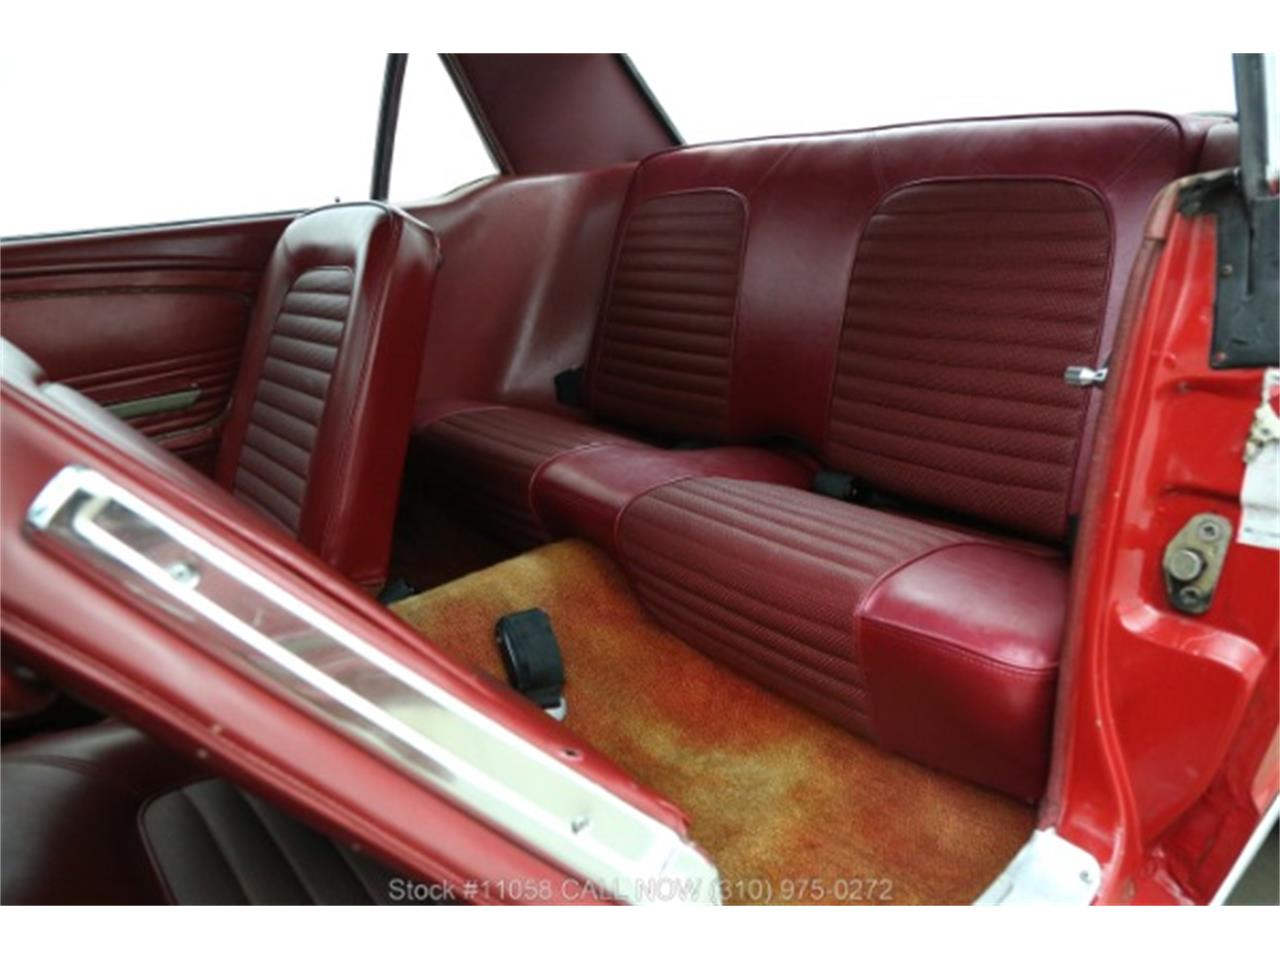 Large Picture of 1966 Mustang located in California - $10,750.00 - QKXT